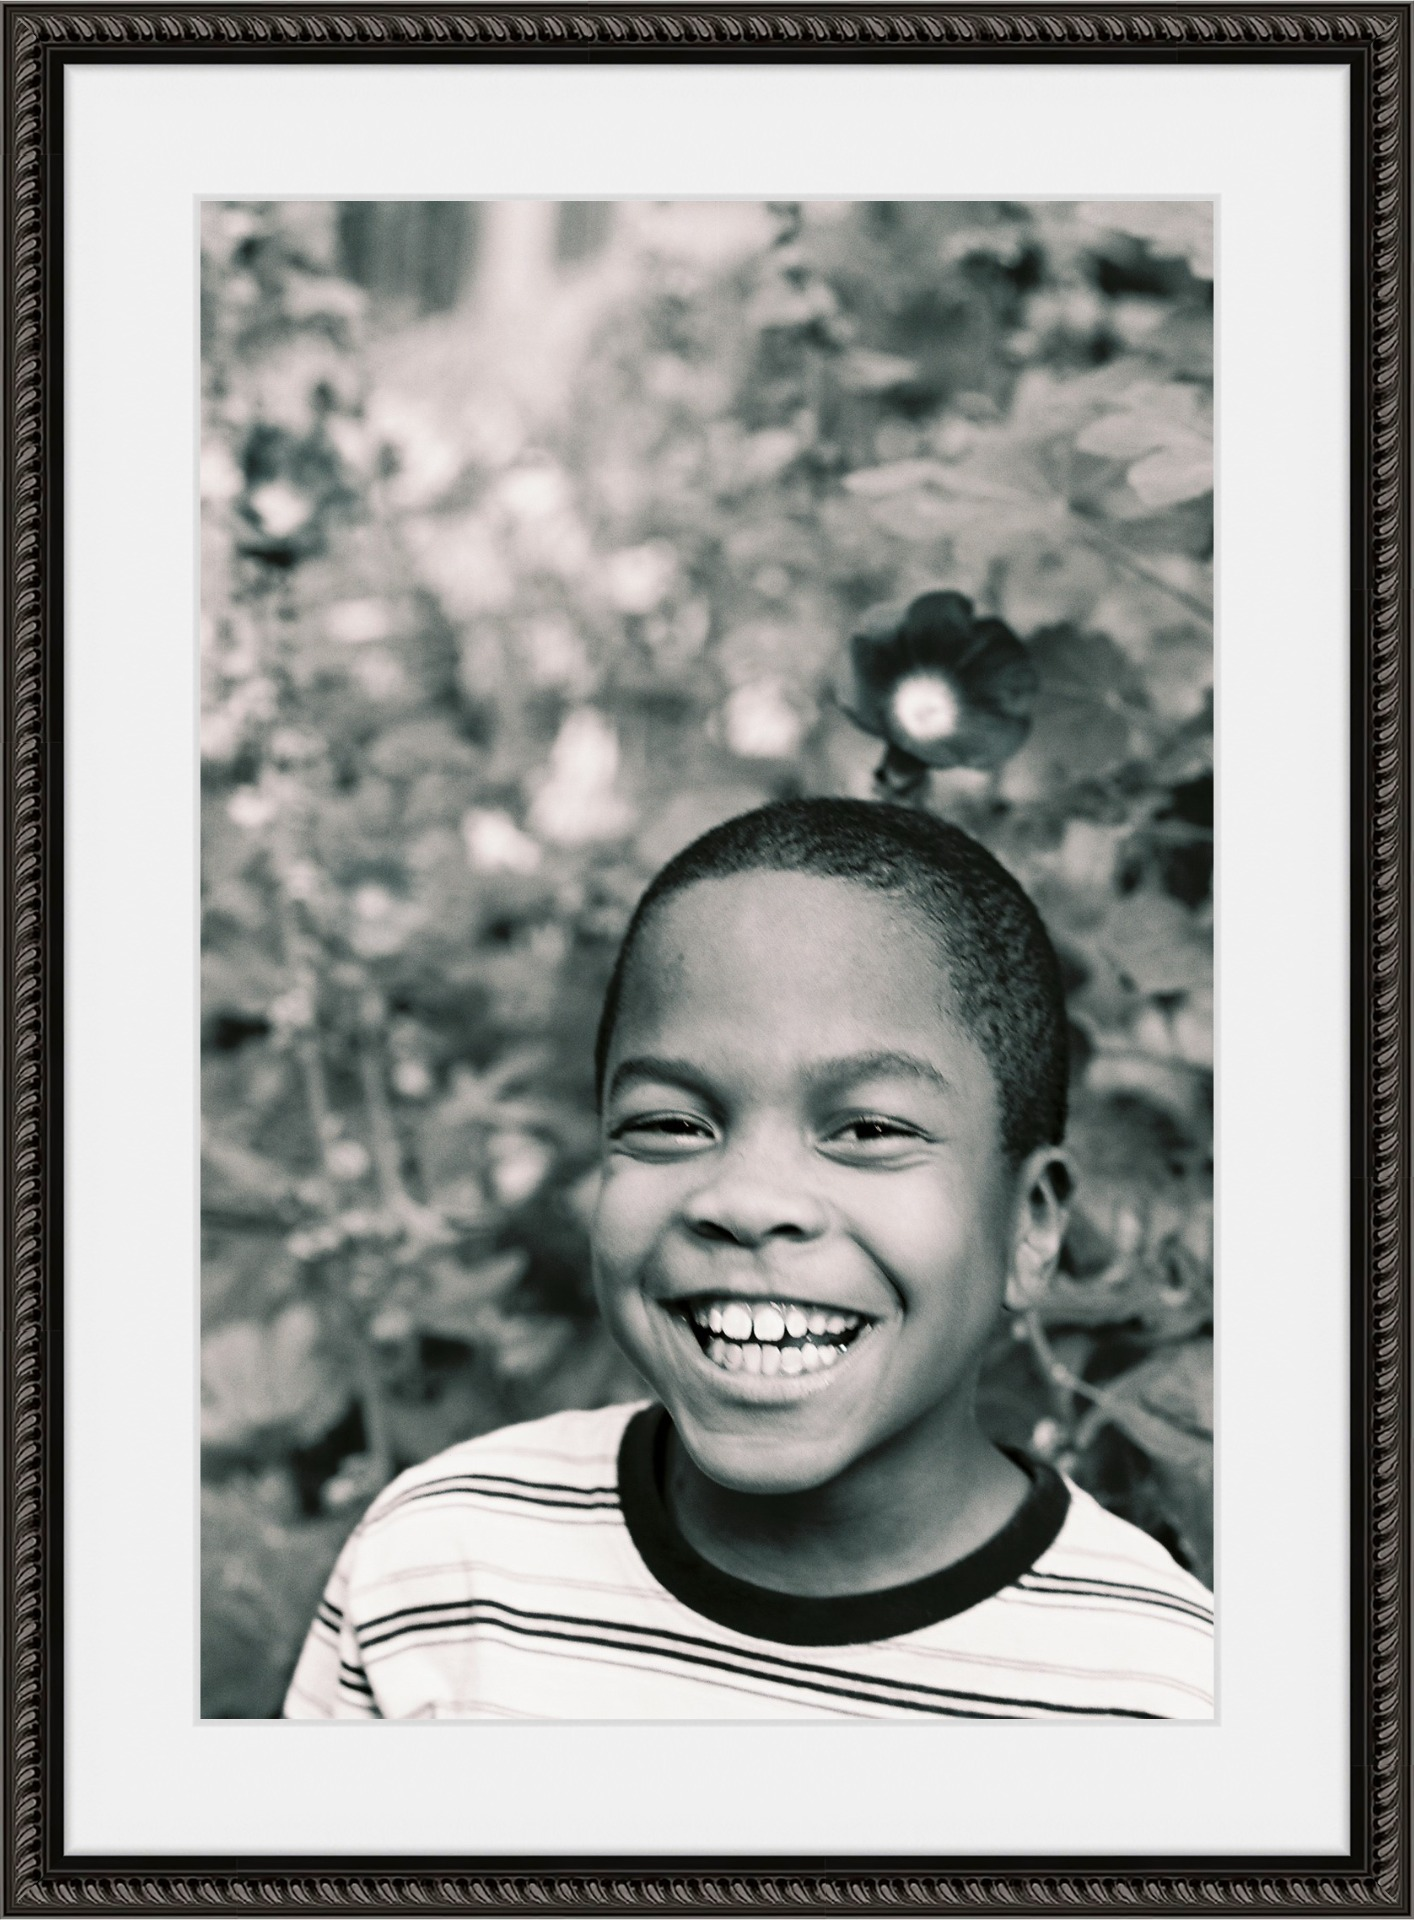 Black_White_Boy_Portrait_In_Garden_